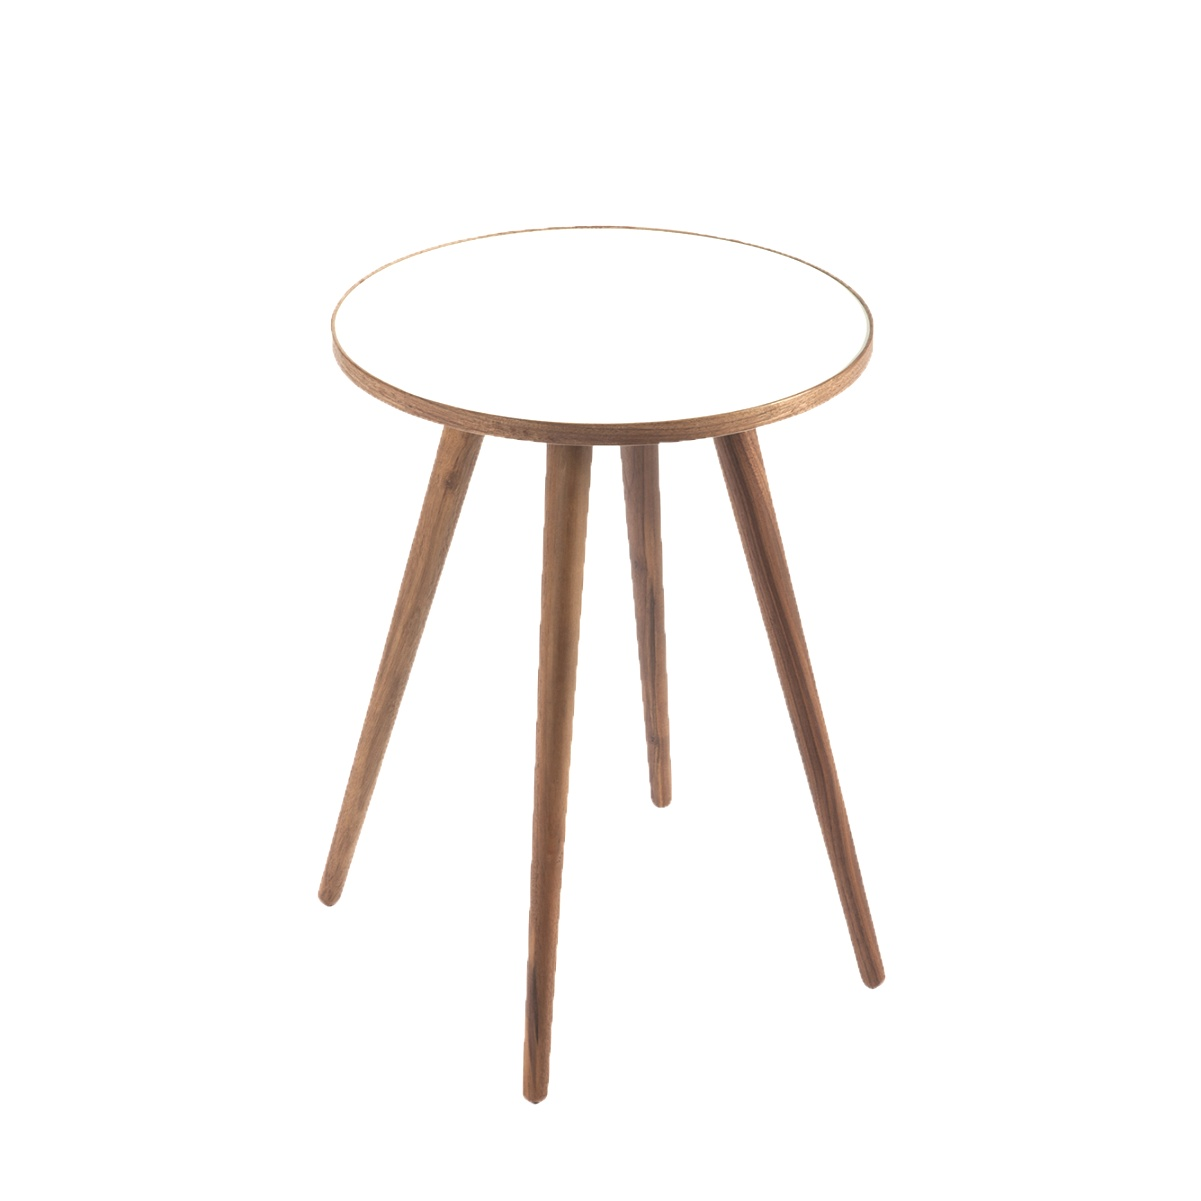 why you should not mid century modern sean dix sputnik side table high accent tables and tan plastic covers mango wood end target dinosaur bedding patio dining used drum throne